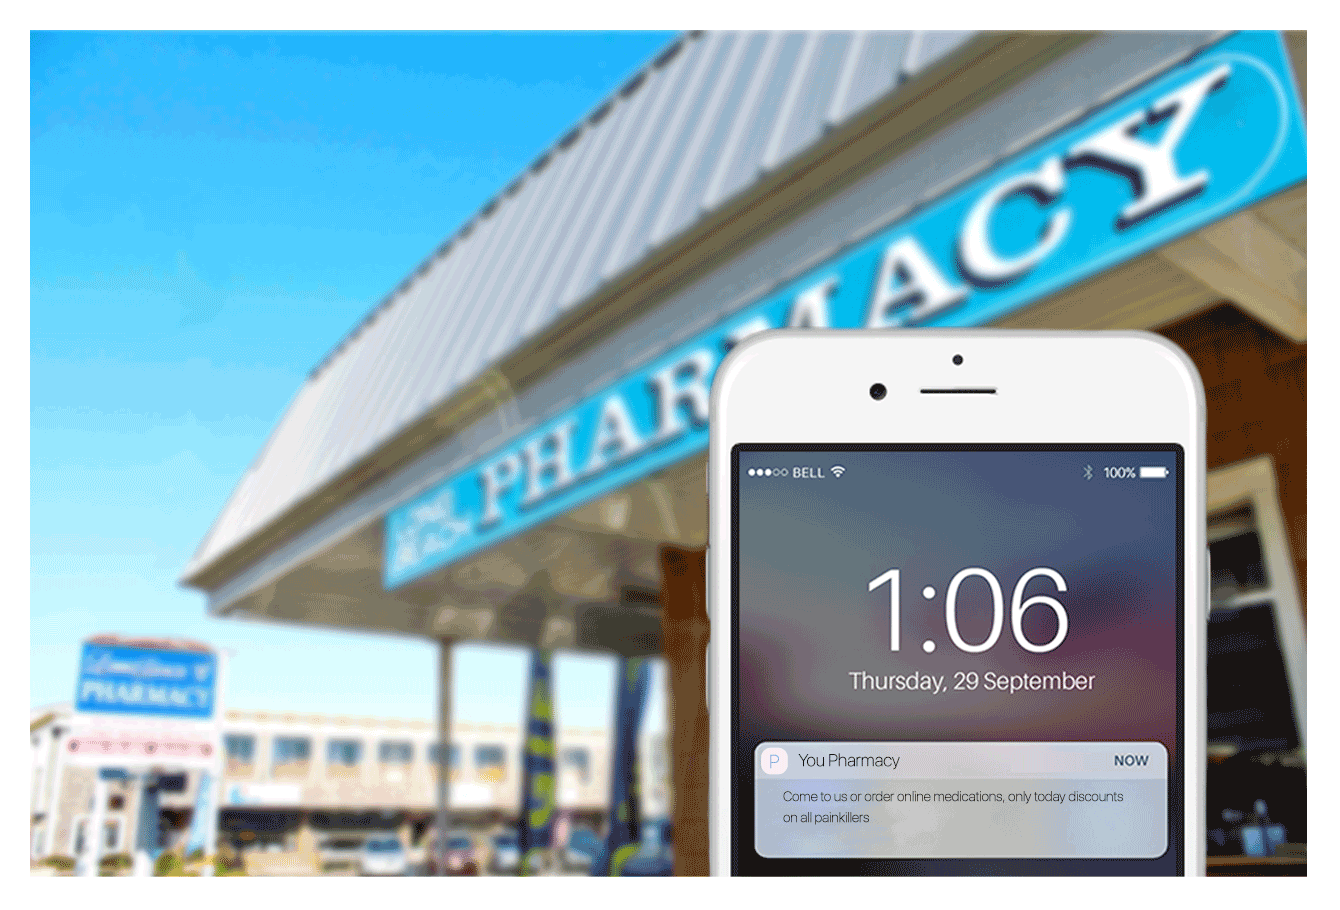 A healthcare mobile application is using a geolocation feature to target ads when a patient passes by a store.